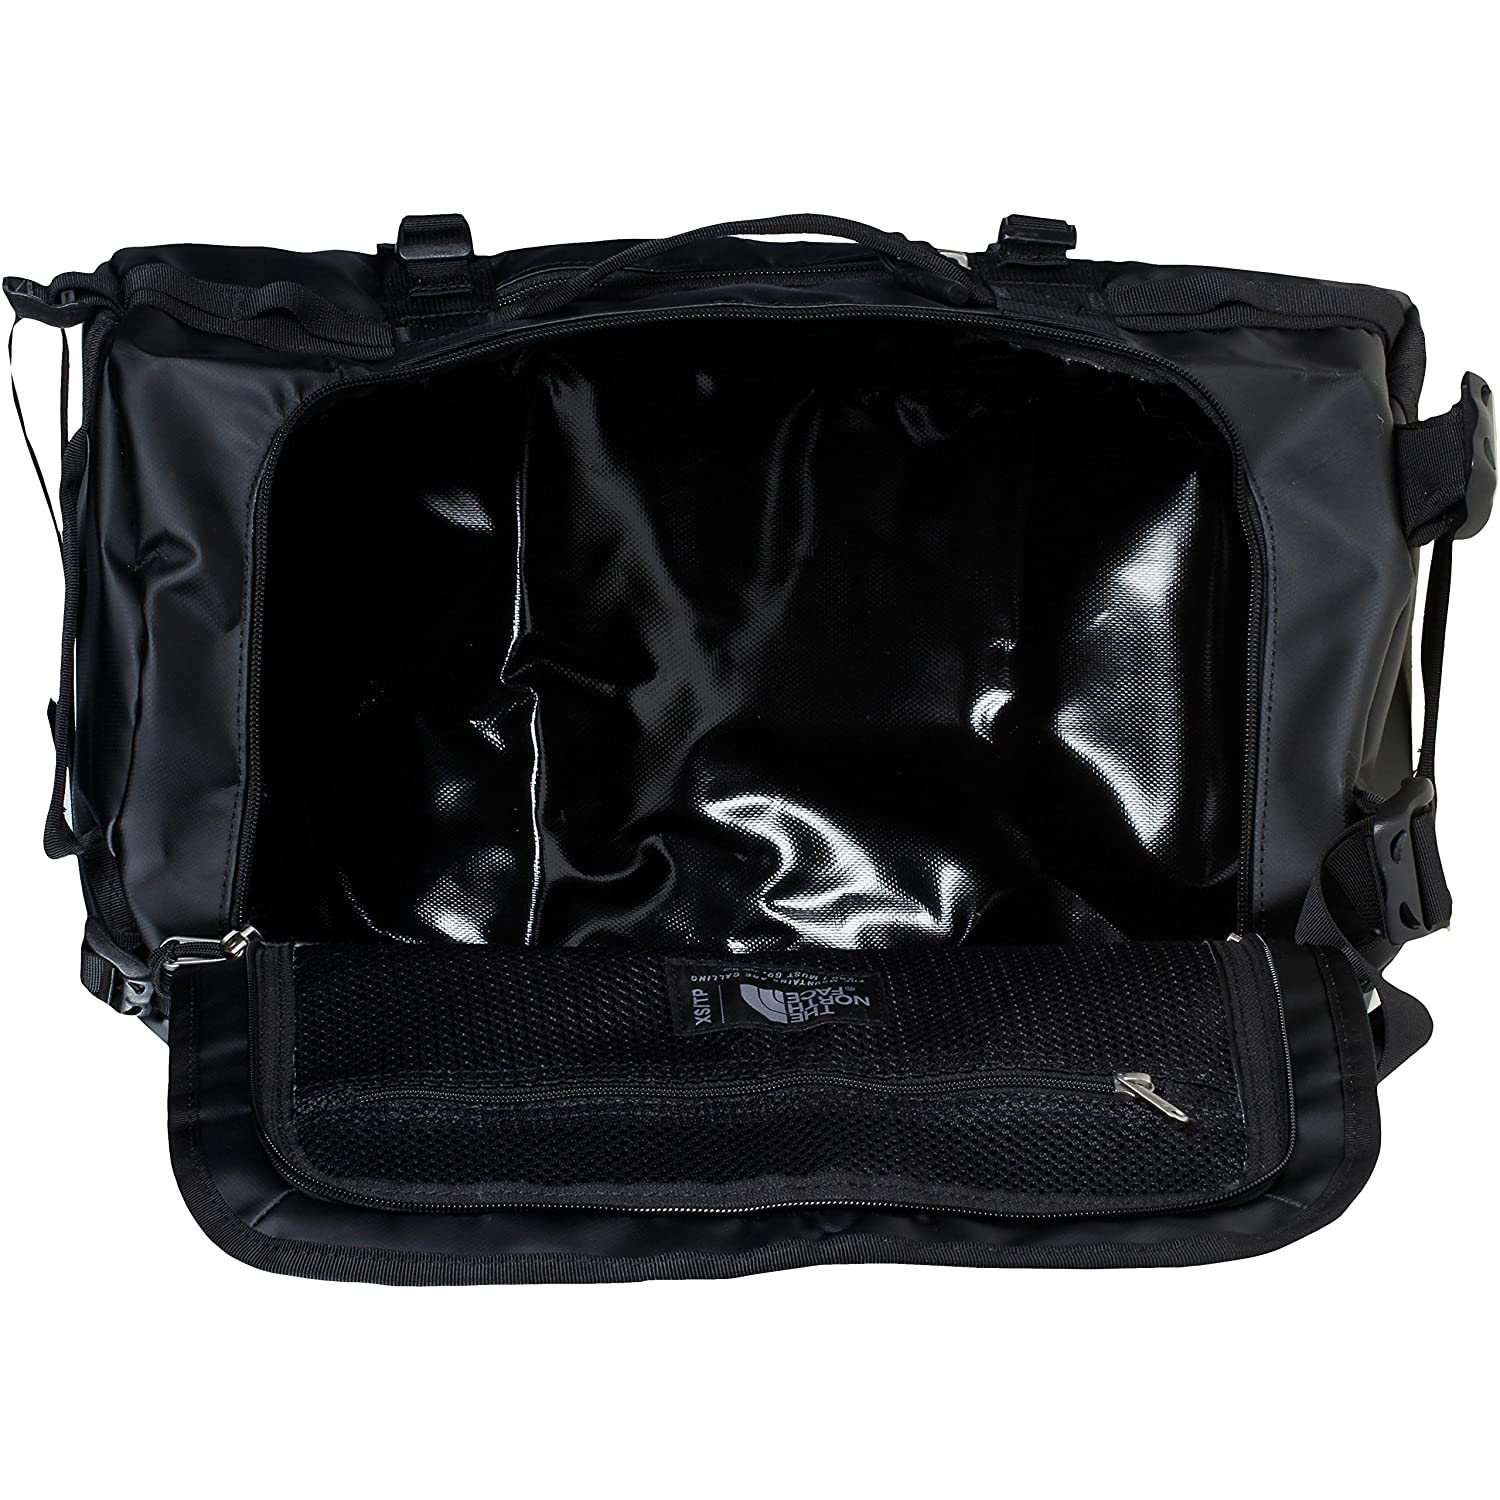 1ce2f4ae392c Amazon.com  The North Face Base Camp Duffel XL Black  Sports   Outdoors